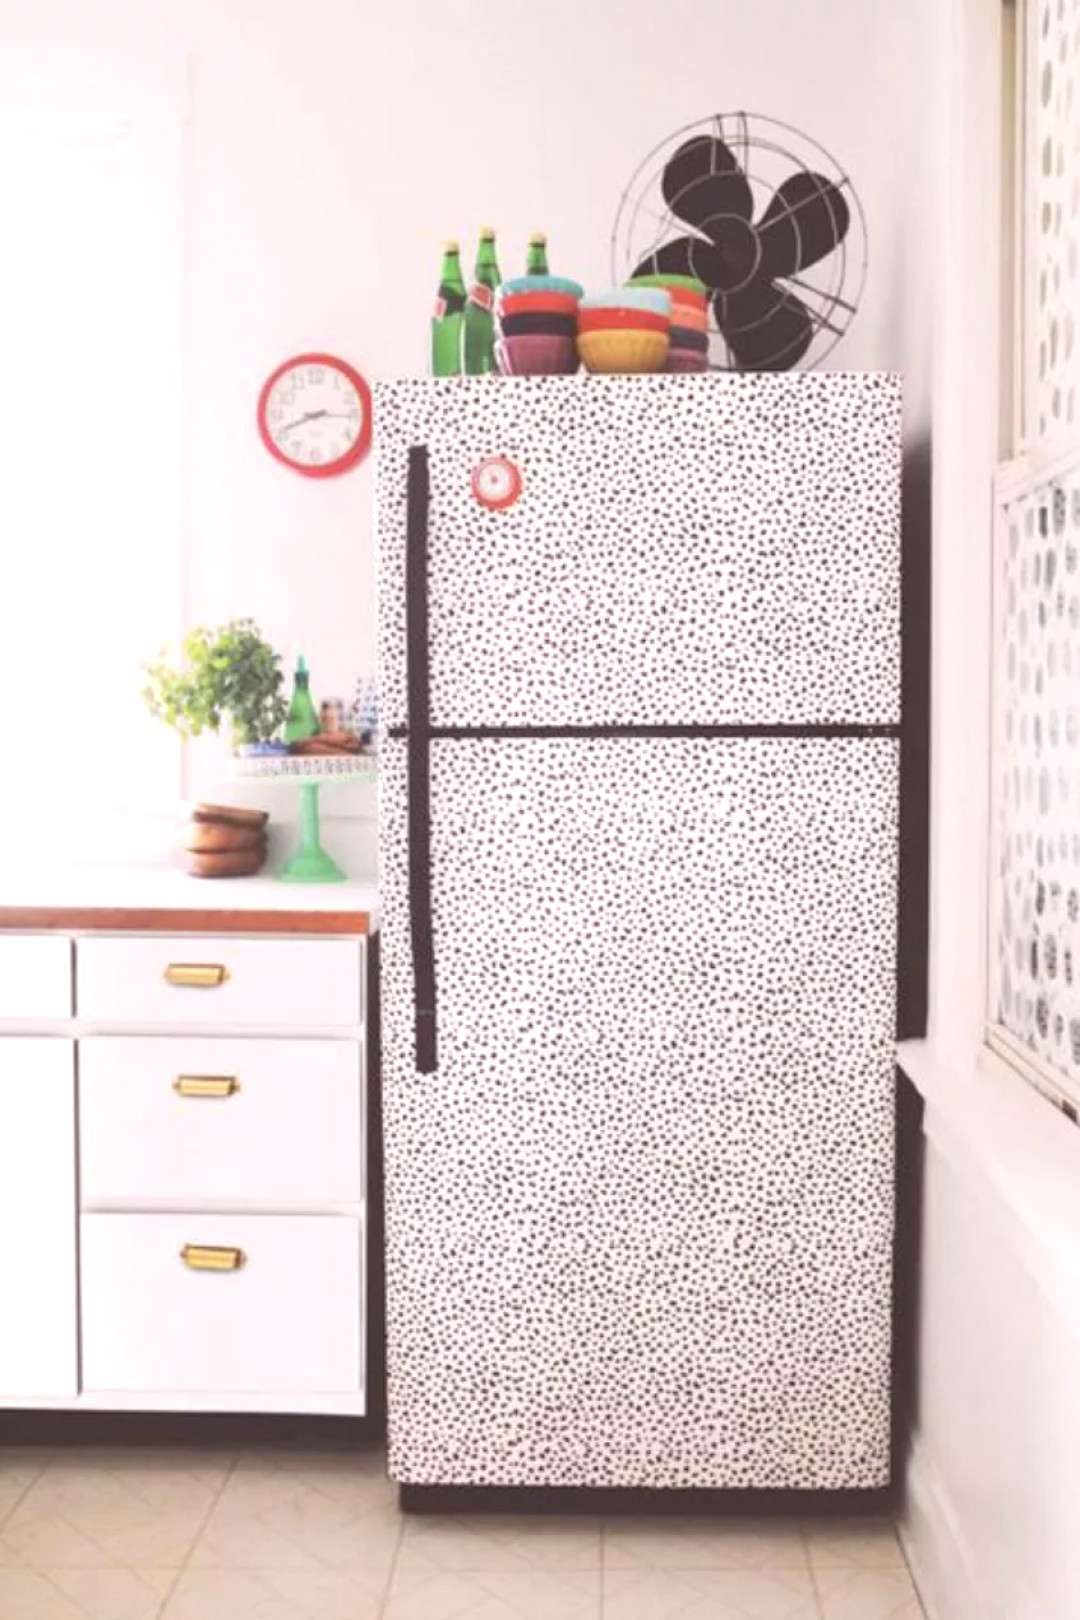 how to update a rental kitchen and get your deposit back. Ideas on how to DIY counter tops, cabinet